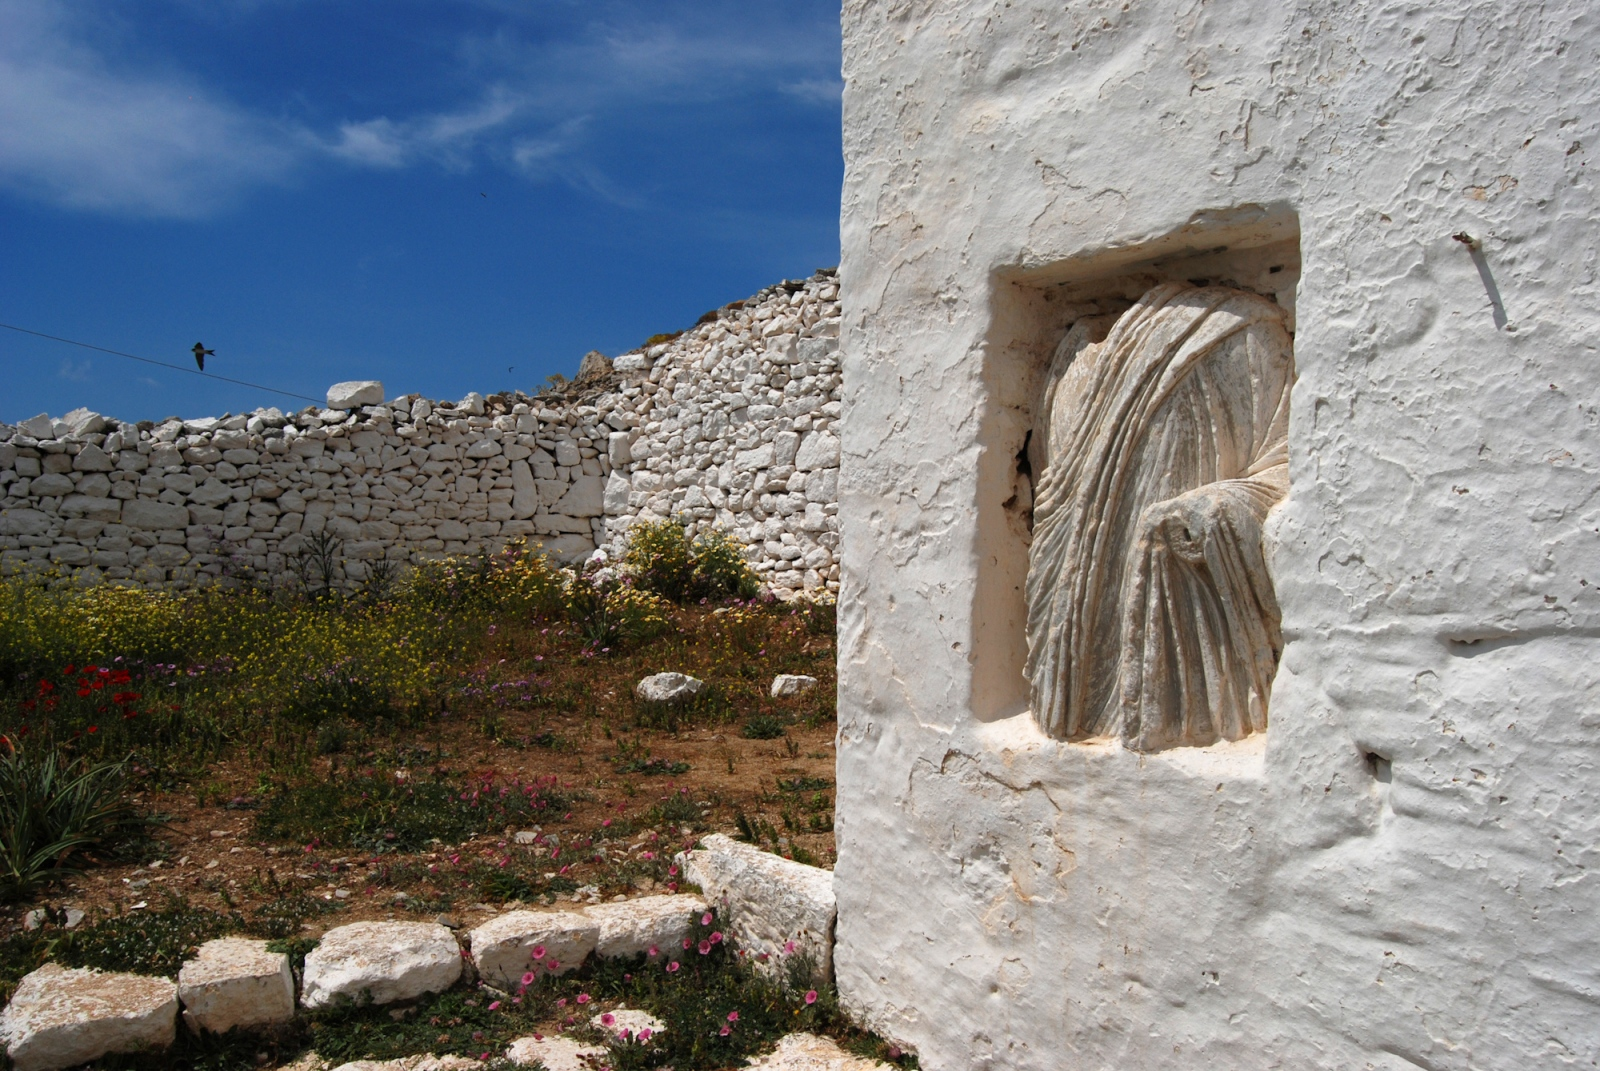 Church bell tower with embedded ancient torso. Folegandros island, Greece.